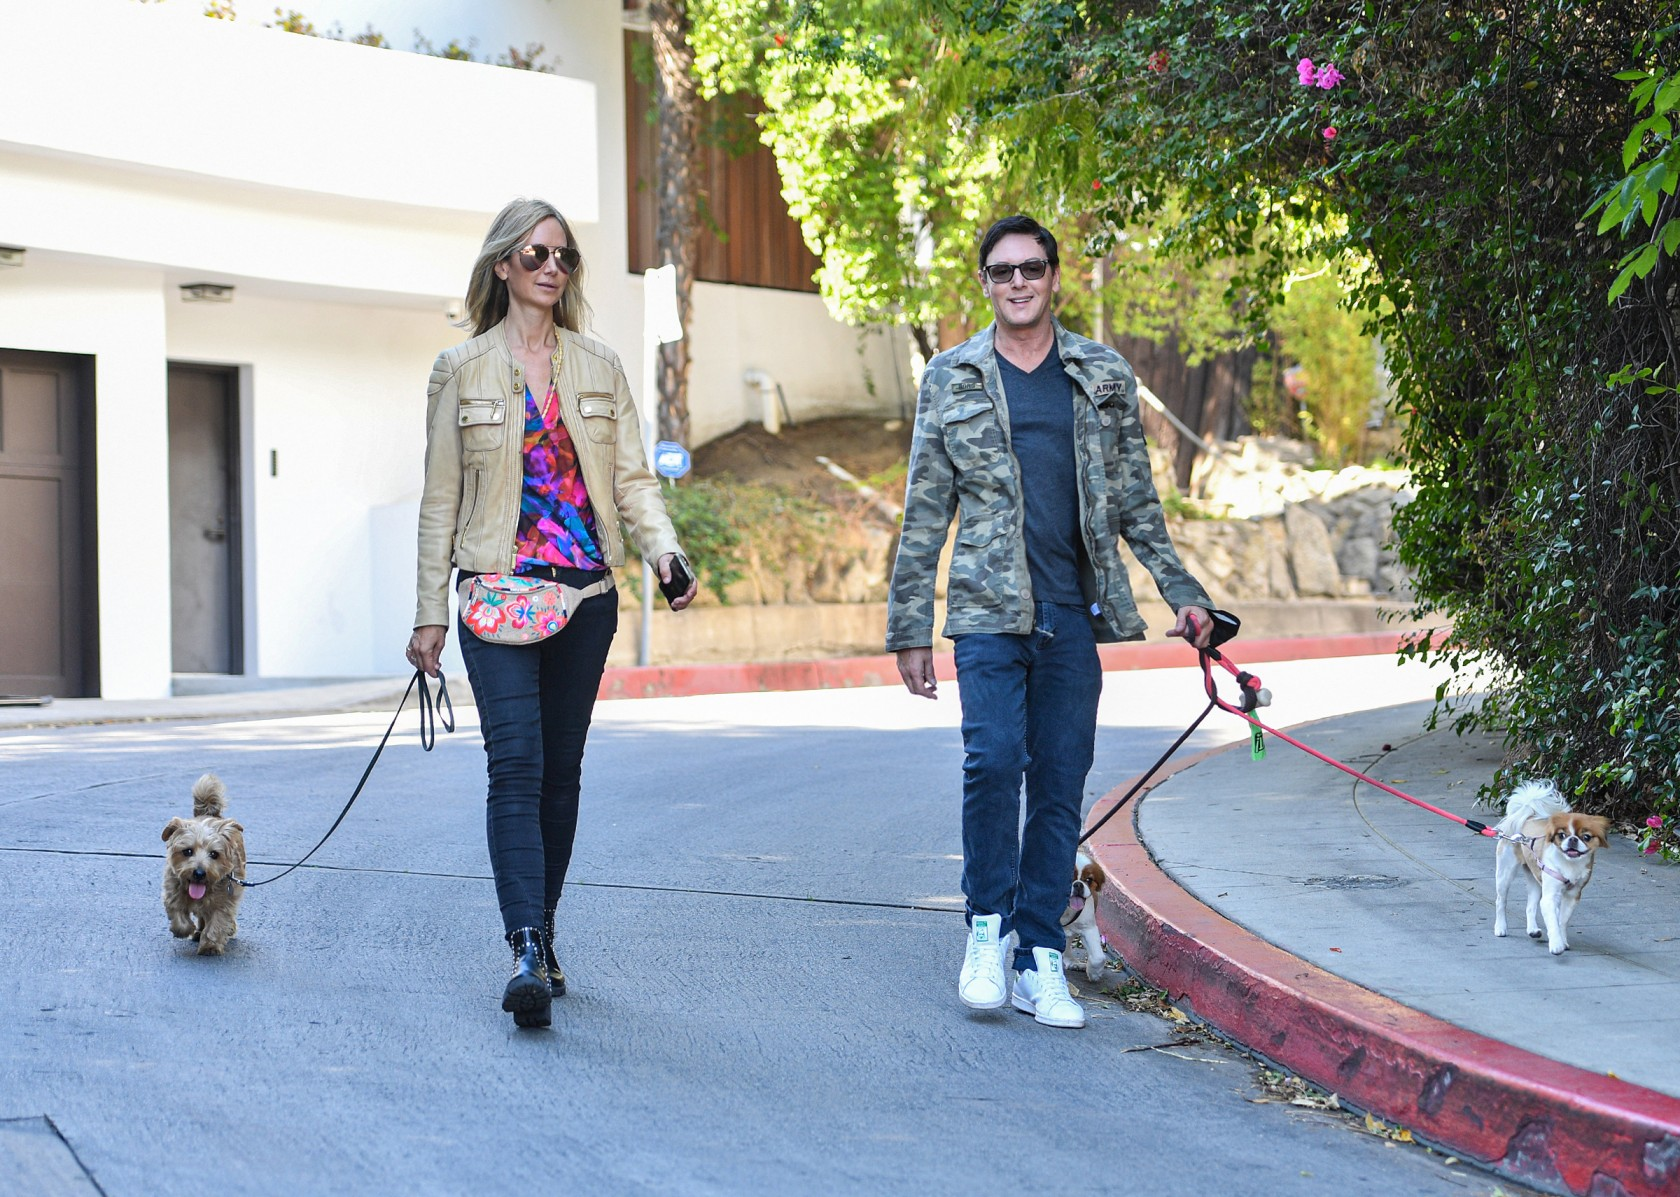 All smiles! Dog lovers Lady Victoria and Sean Borg enjoy a Hollywood stroll with their adorable pups